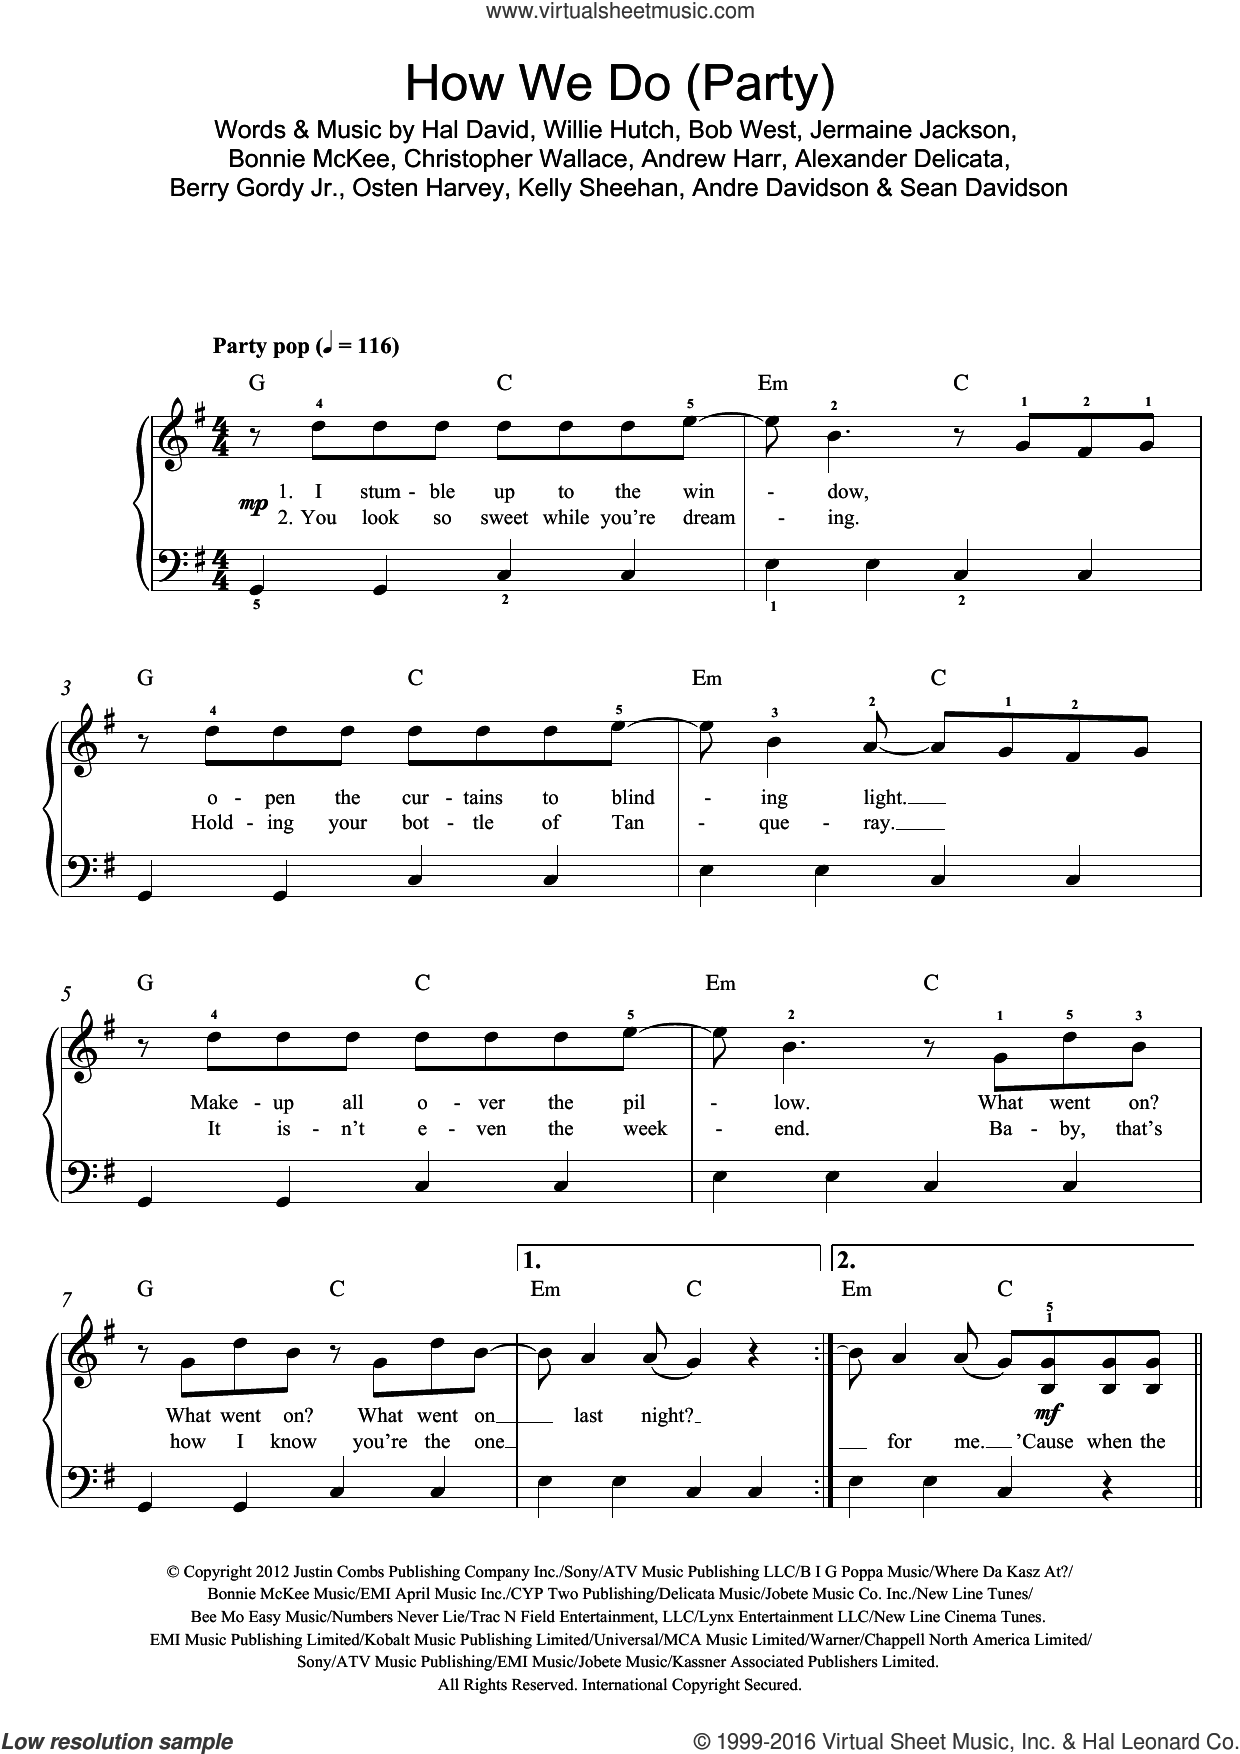 How We Do (Party) sheet music for piano solo (beginners) by Rita Ora, Alexander Delicata, Andre Davidson, Andrew Harr, Berry Gordy Jr., Bob West, Bonnie McKee, Christopher Wallace, Hal David, Jermaine Jackson, Kelly Sheehan, Osten Harvey, Sean Davidson and Willie Hutch, beginner piano (beginners)